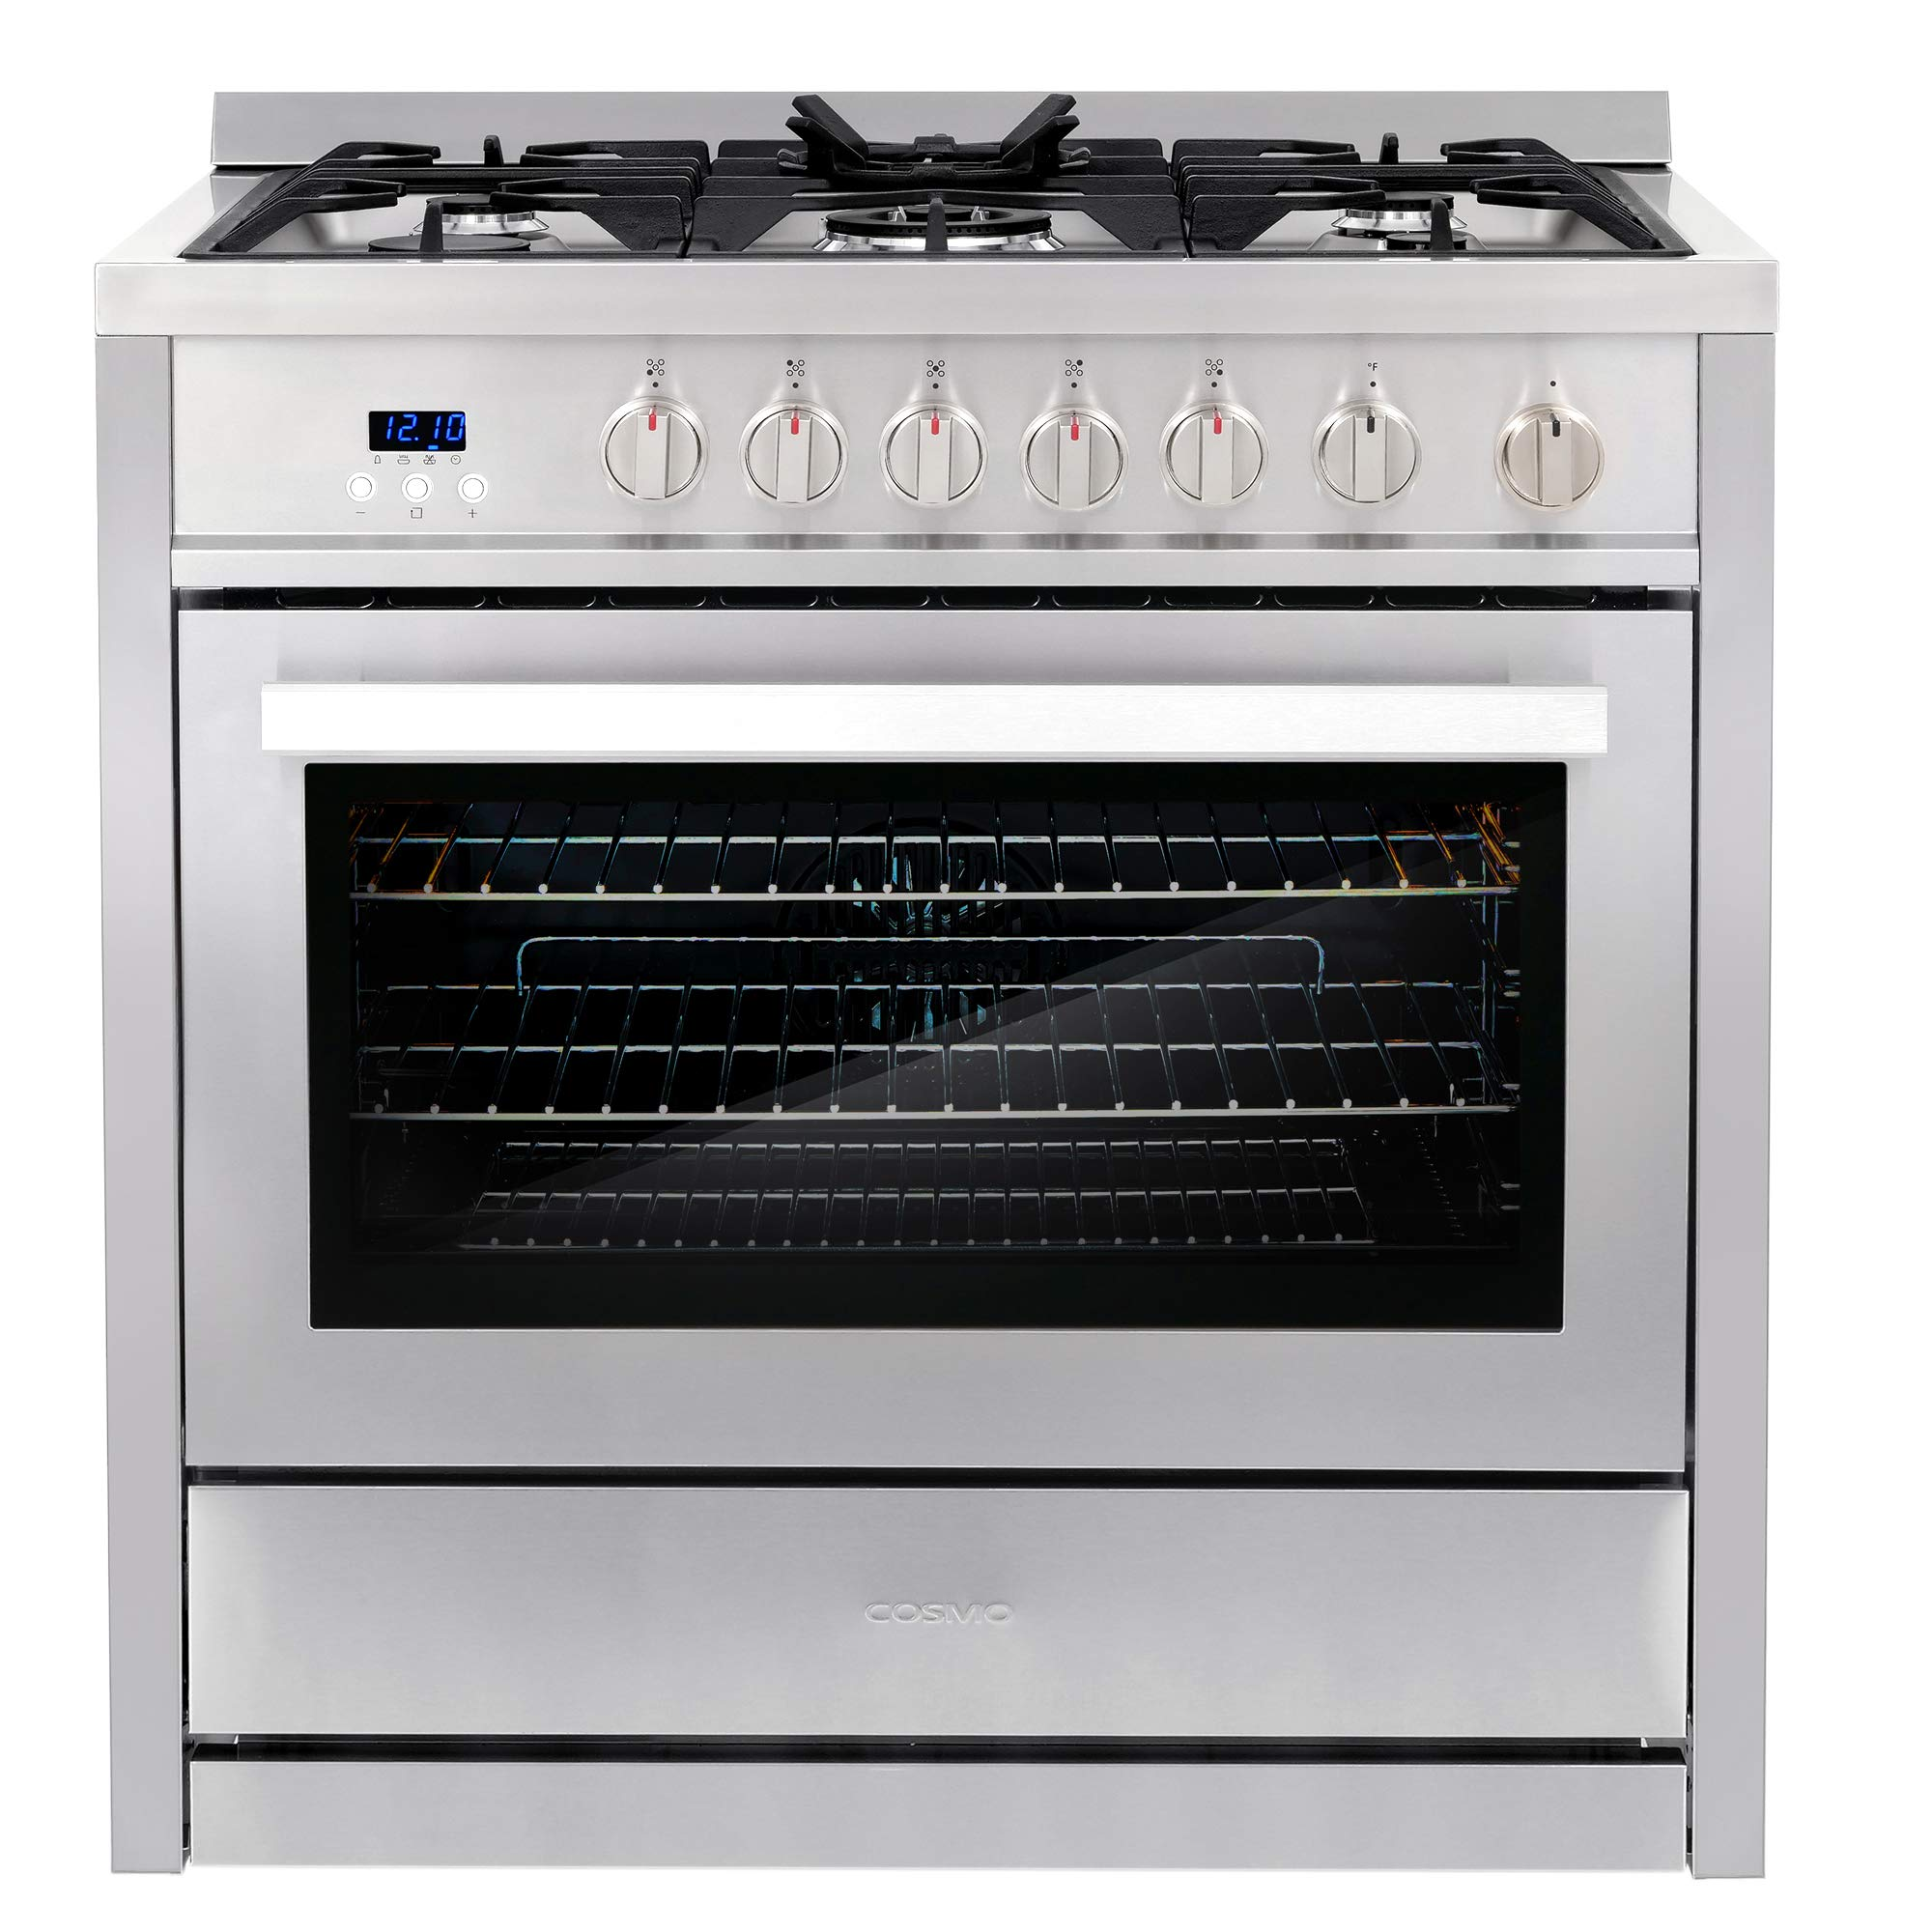 Cosmo COS 965AGC Single Cooktop Stainless